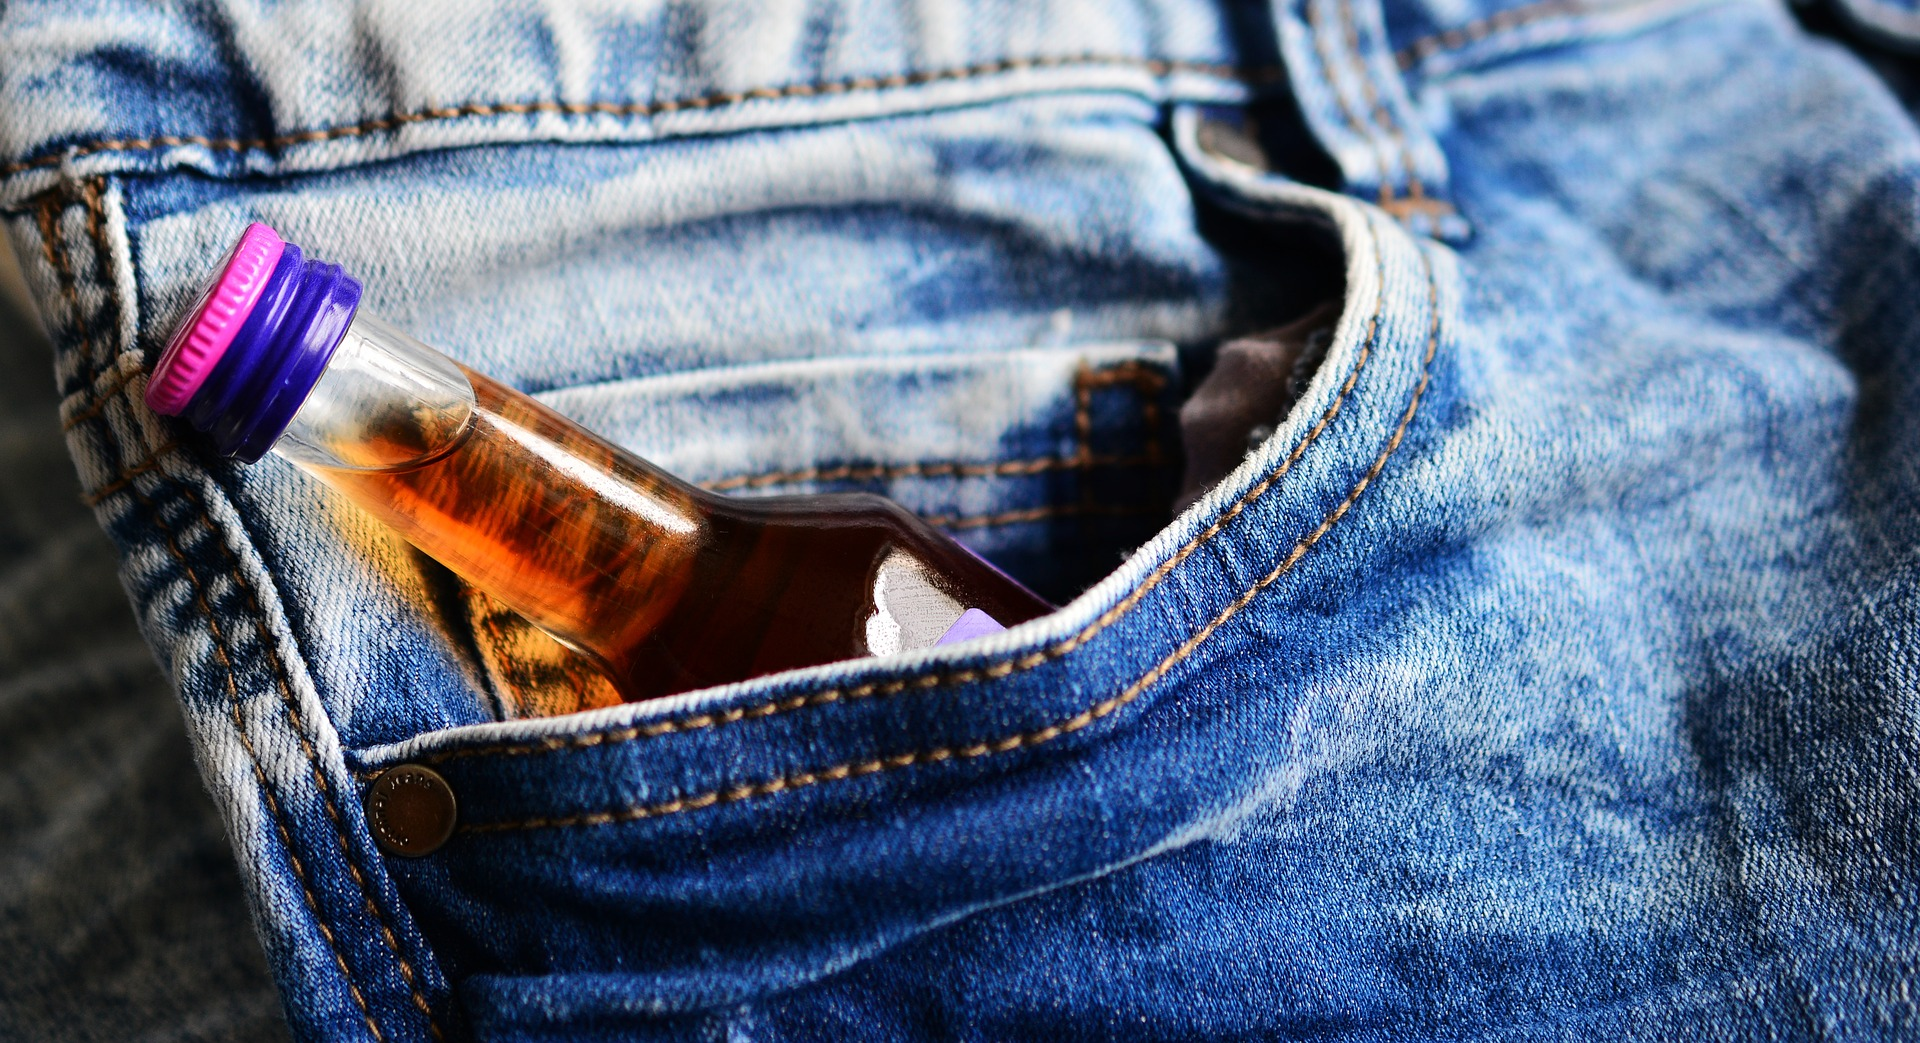 Alcohol in pocket